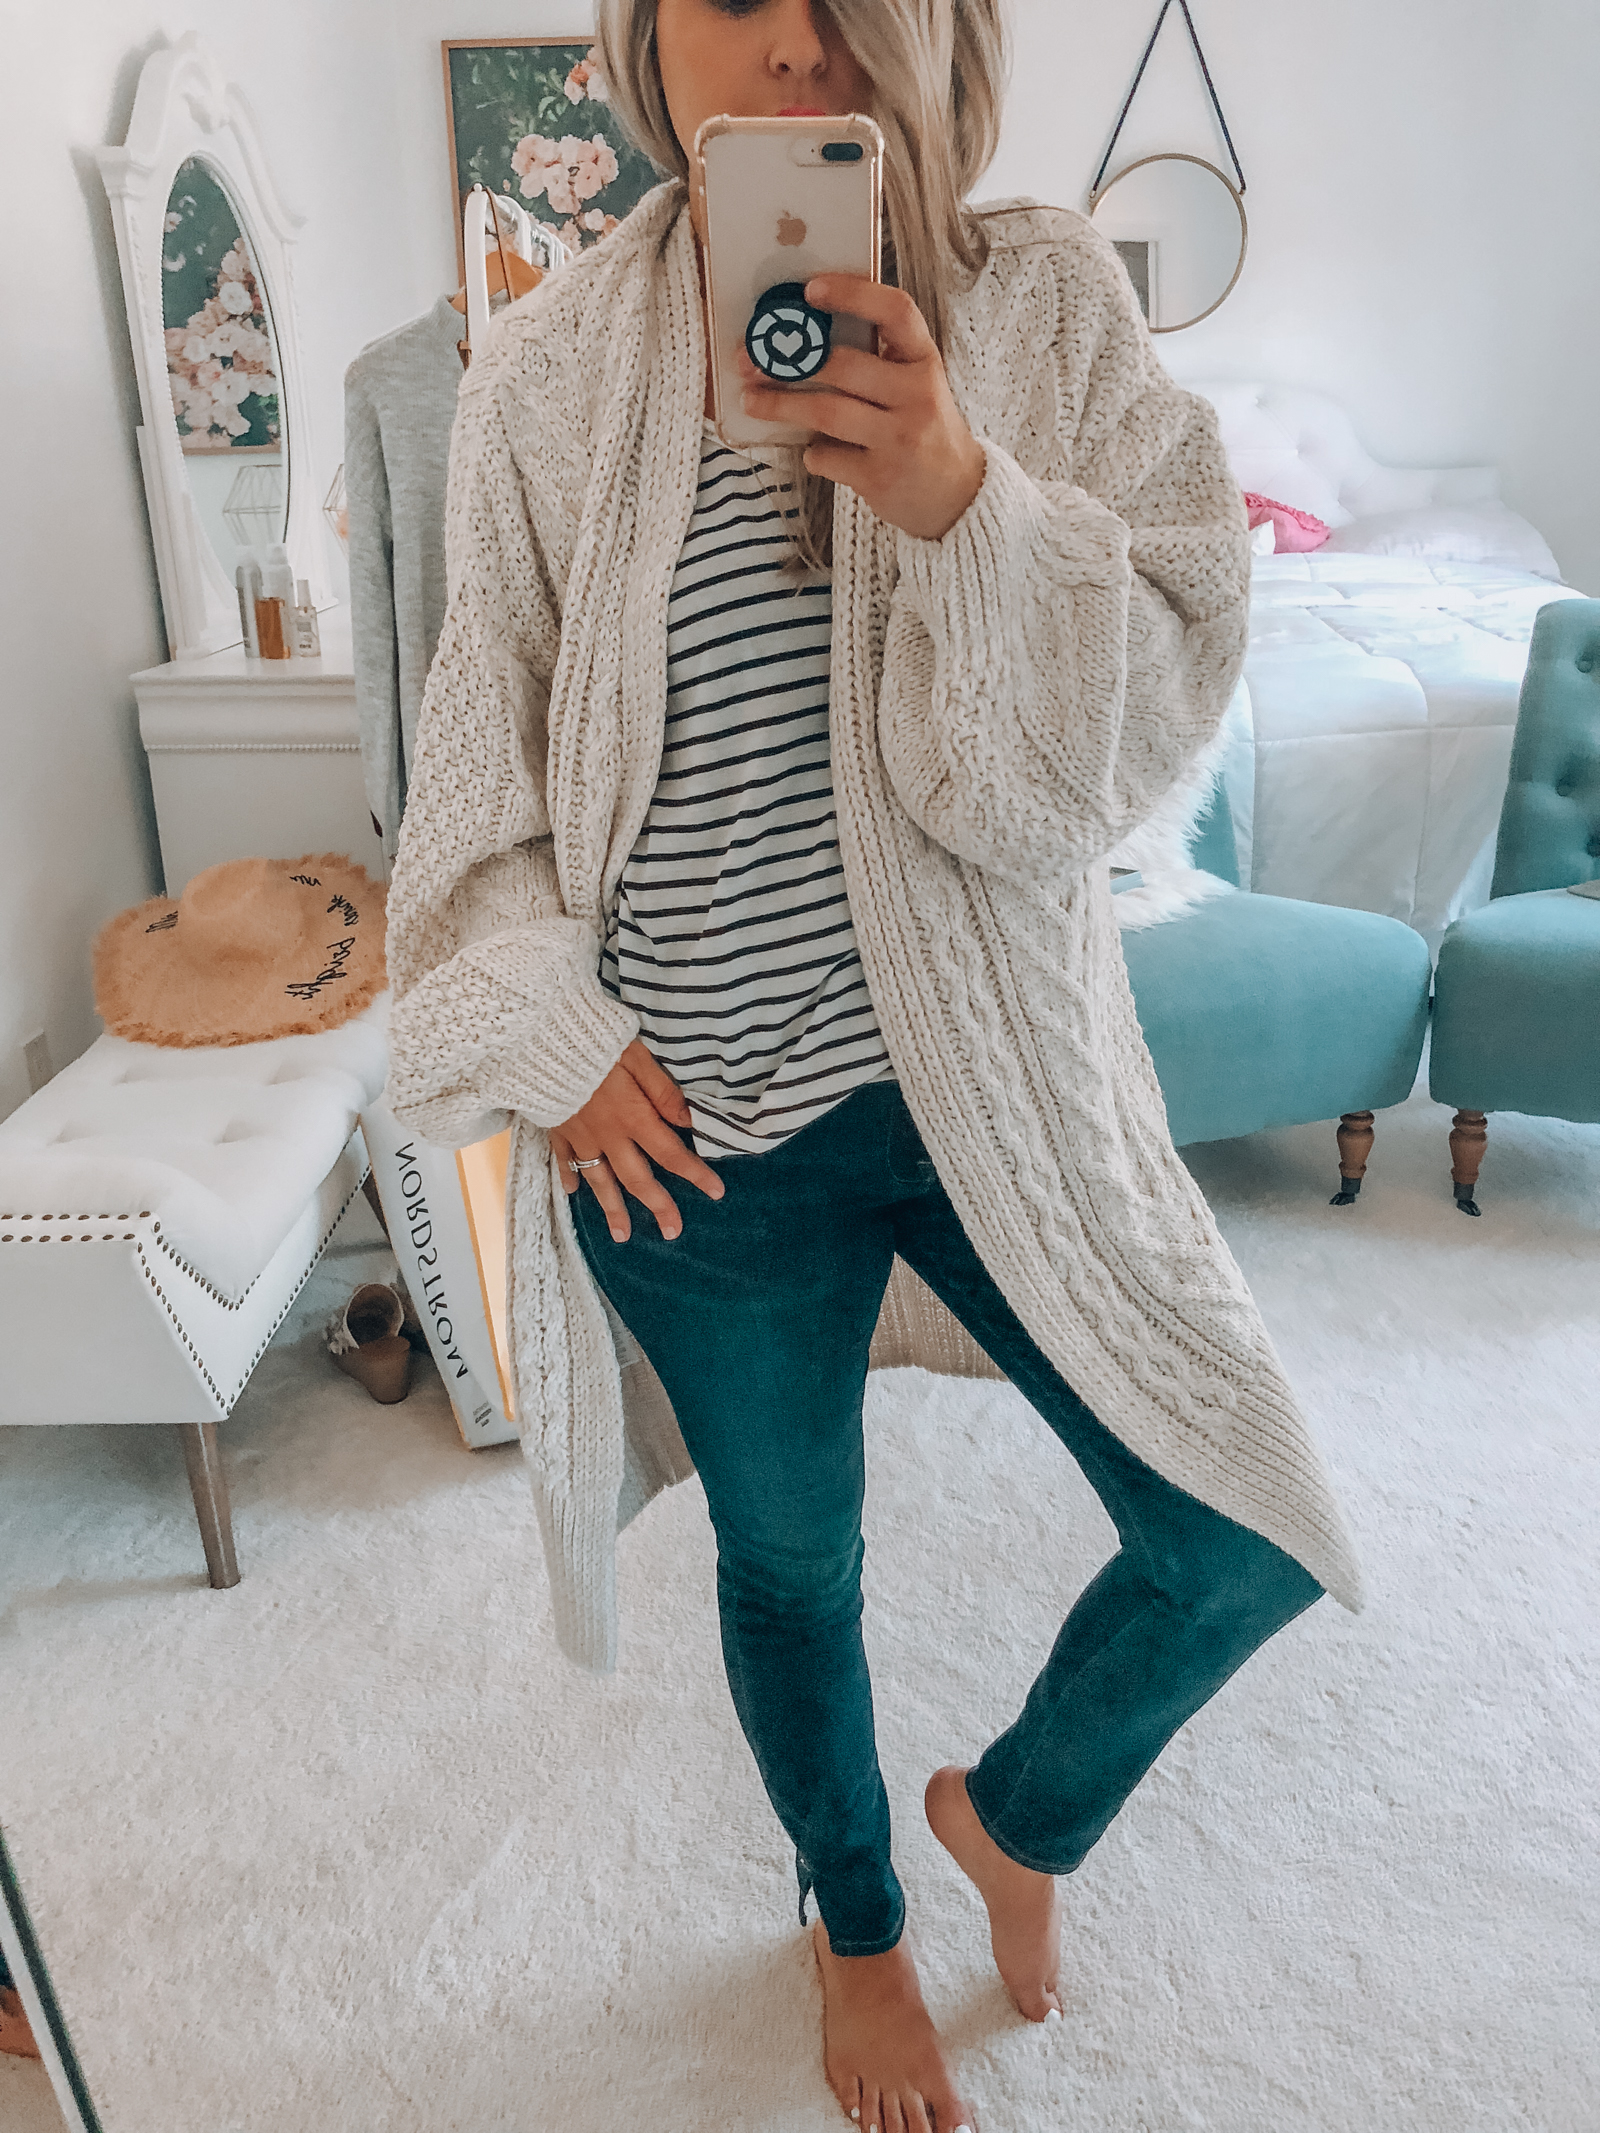 718a83322e2d TOPSHOP LONG OPEN FRONT CARDI $49.90: (wearing 6) This is definitely one of  my favorites. It probably won't last for more than 2 seasons, but it's  beyond ...